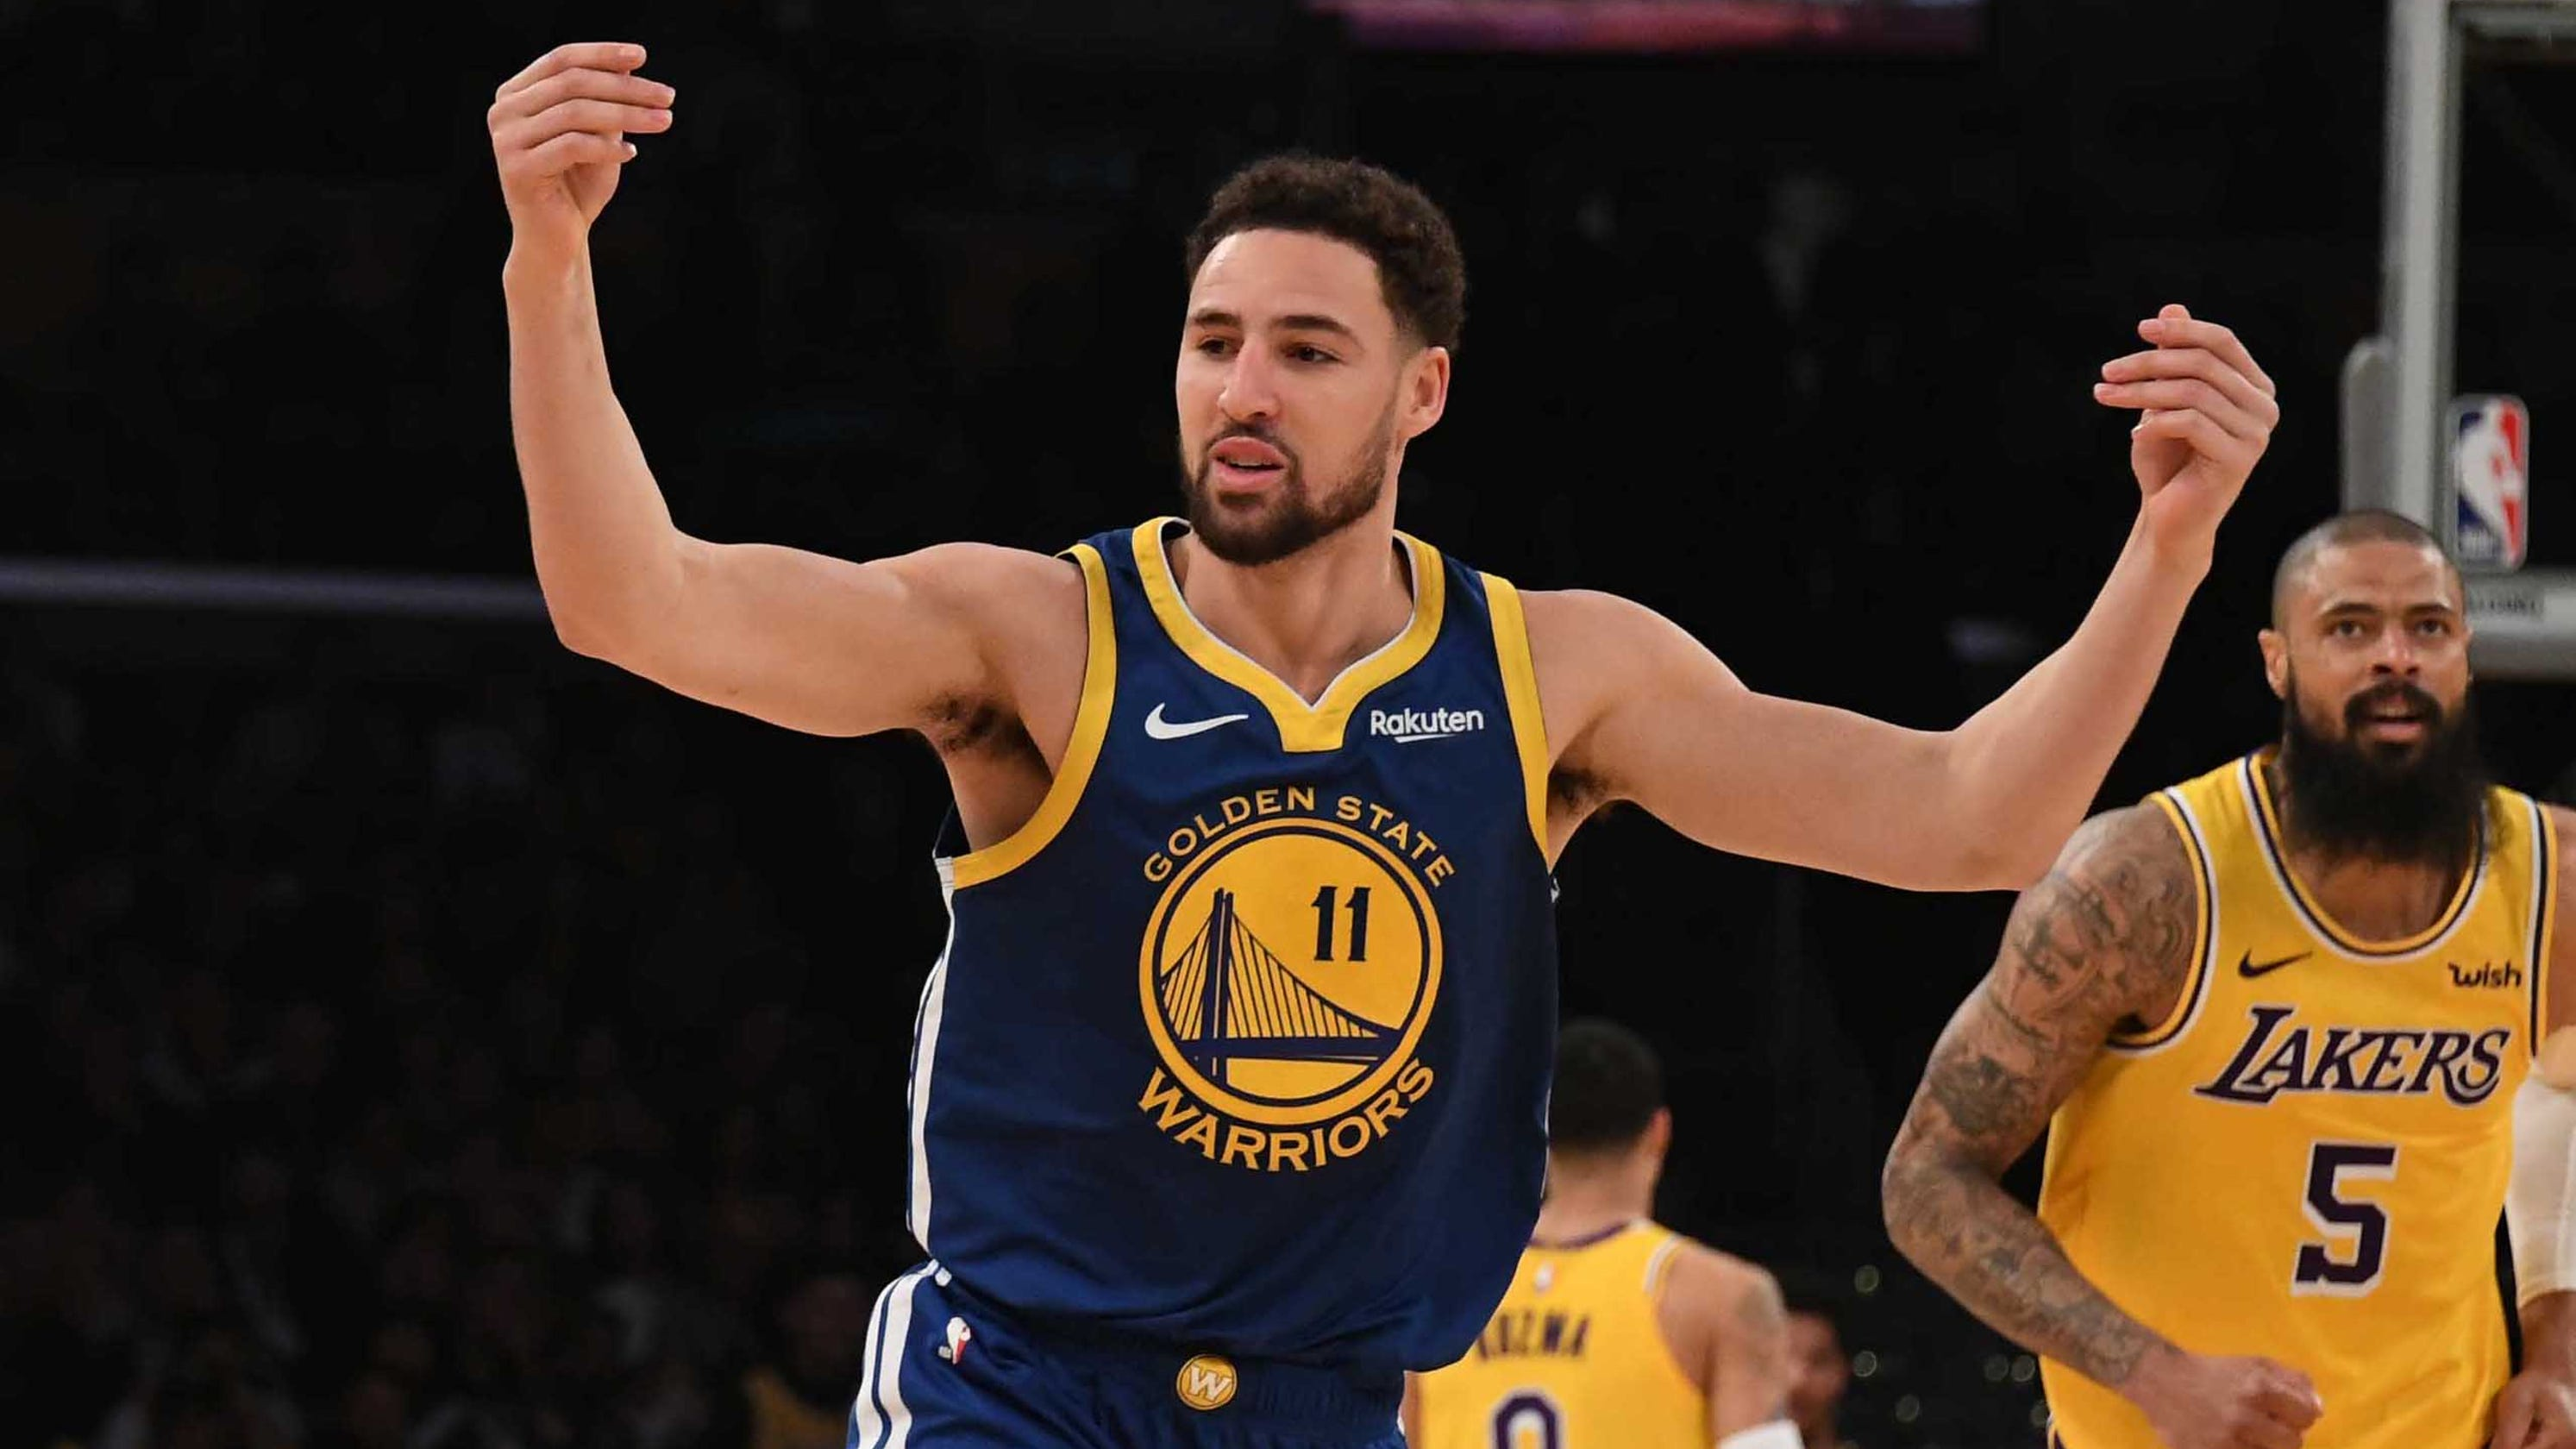 a4c5fec039a Klay Thompson ties NBA record by hitting 10 straight 3-pointers against the  Lakers